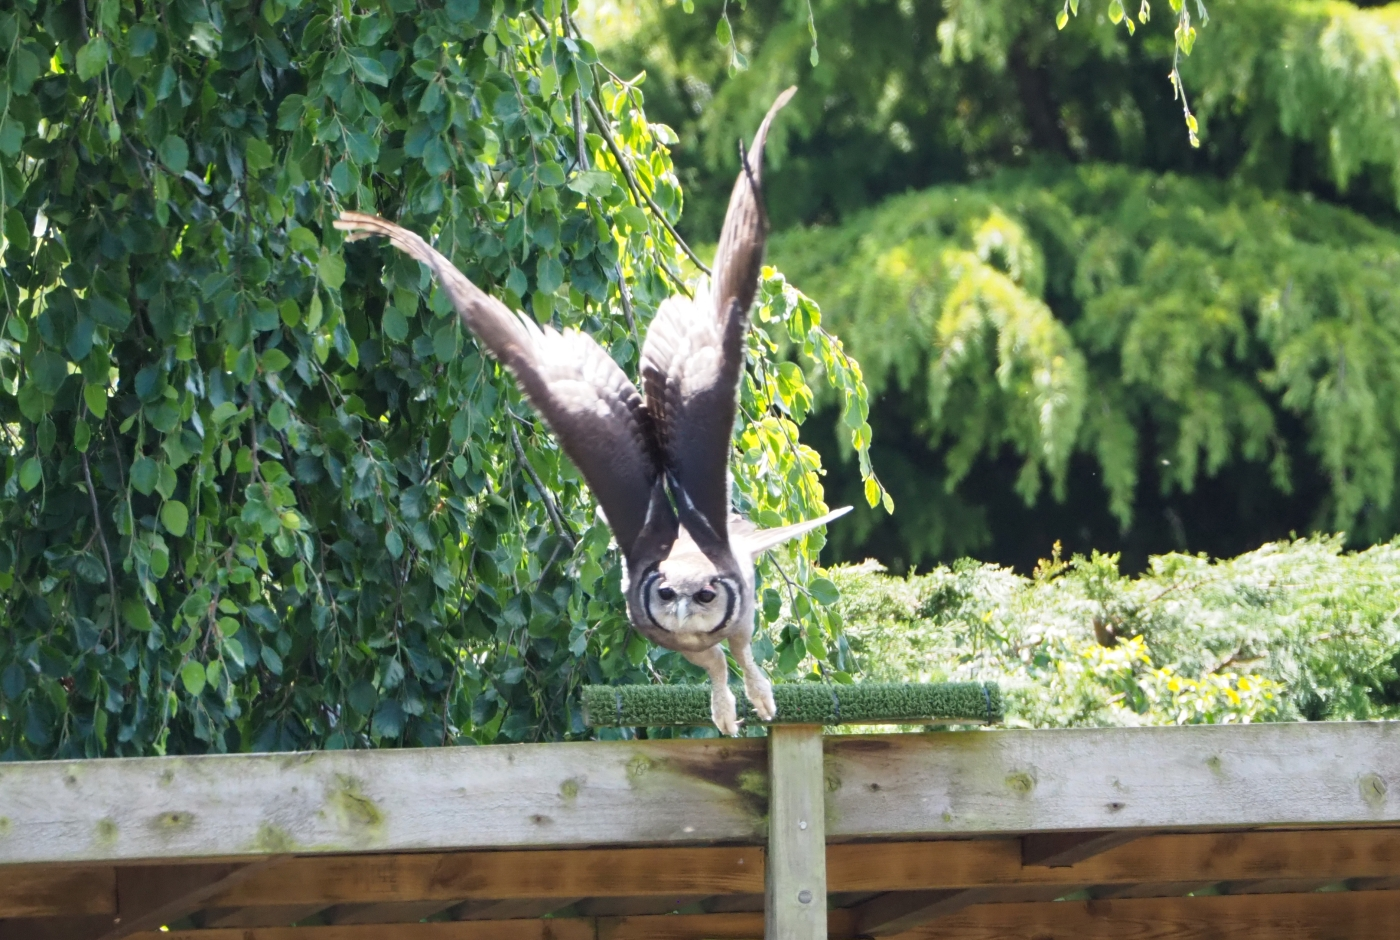 Milky eagle owl taking flight during the first flying display